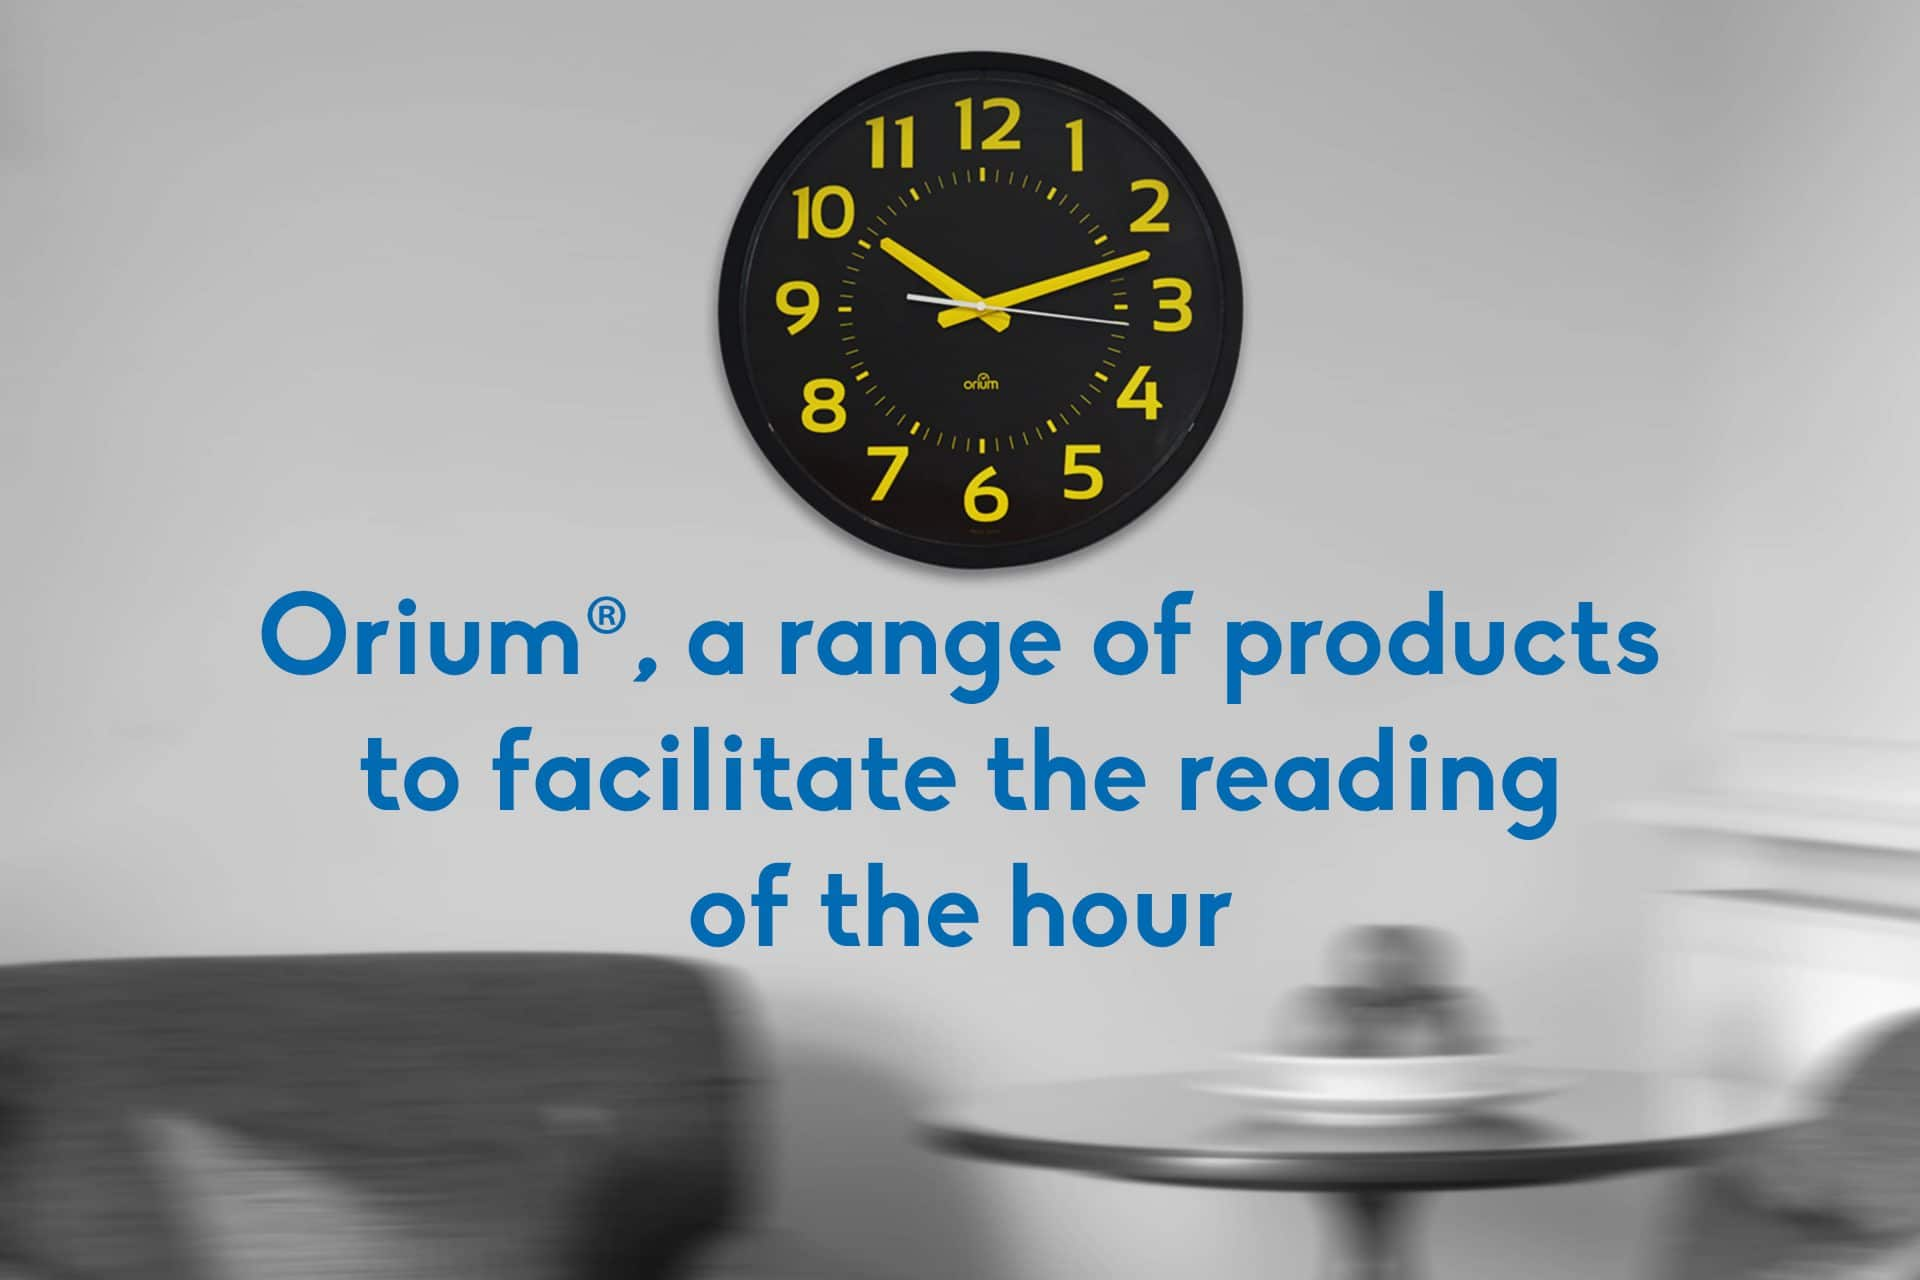 Clocks, watches and alarm clocks adapted to facilitate the reading of the hour